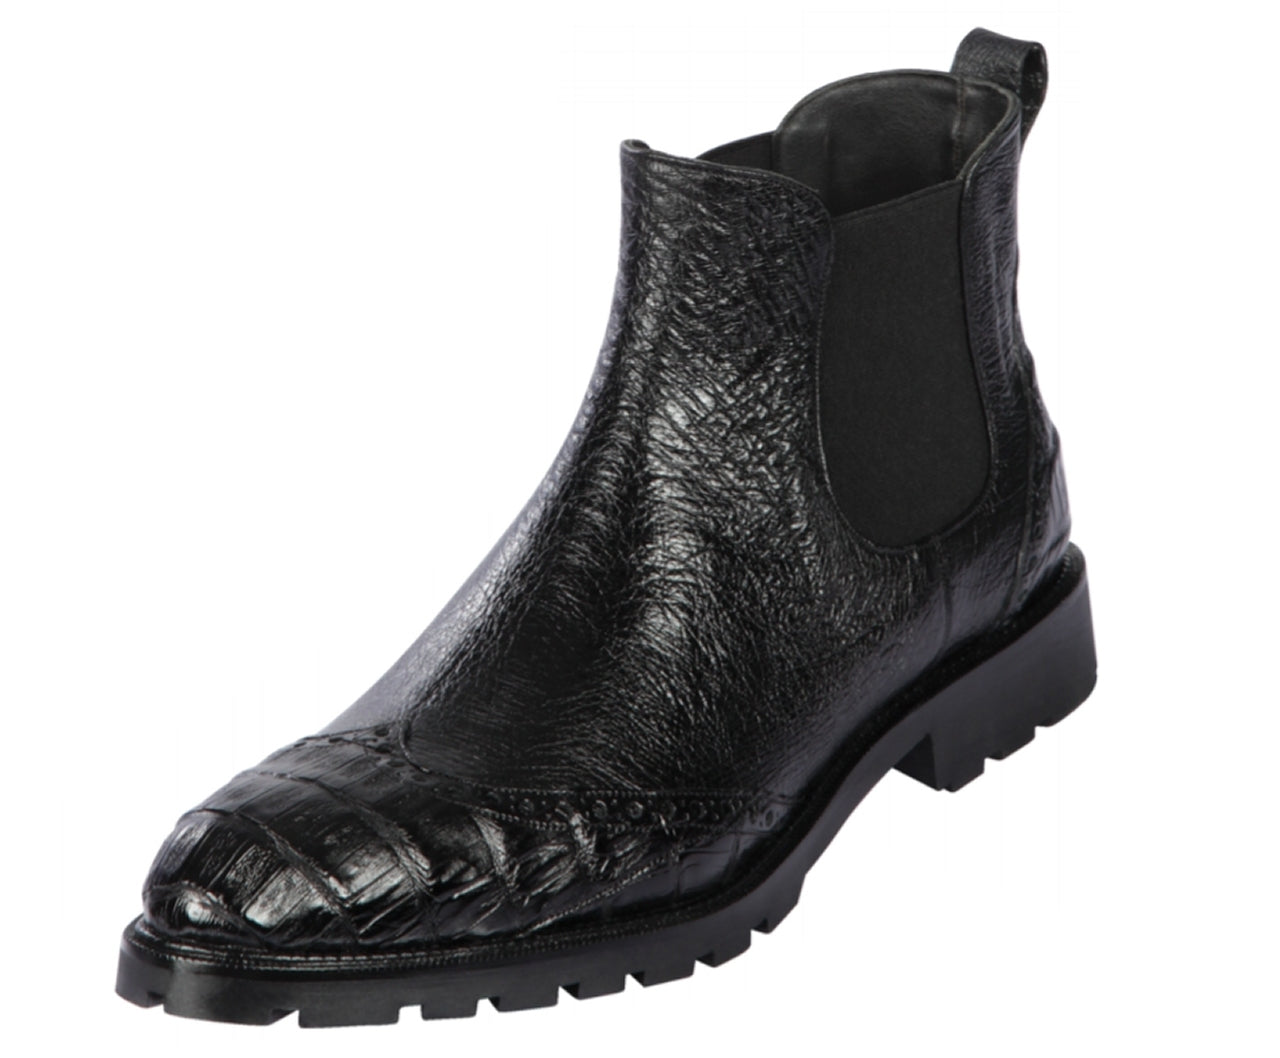 Lombardy - Genuine Ostrich & Caiman Belly Croc Lug Sole Ankle Boot - Black LMB-ZLM078205